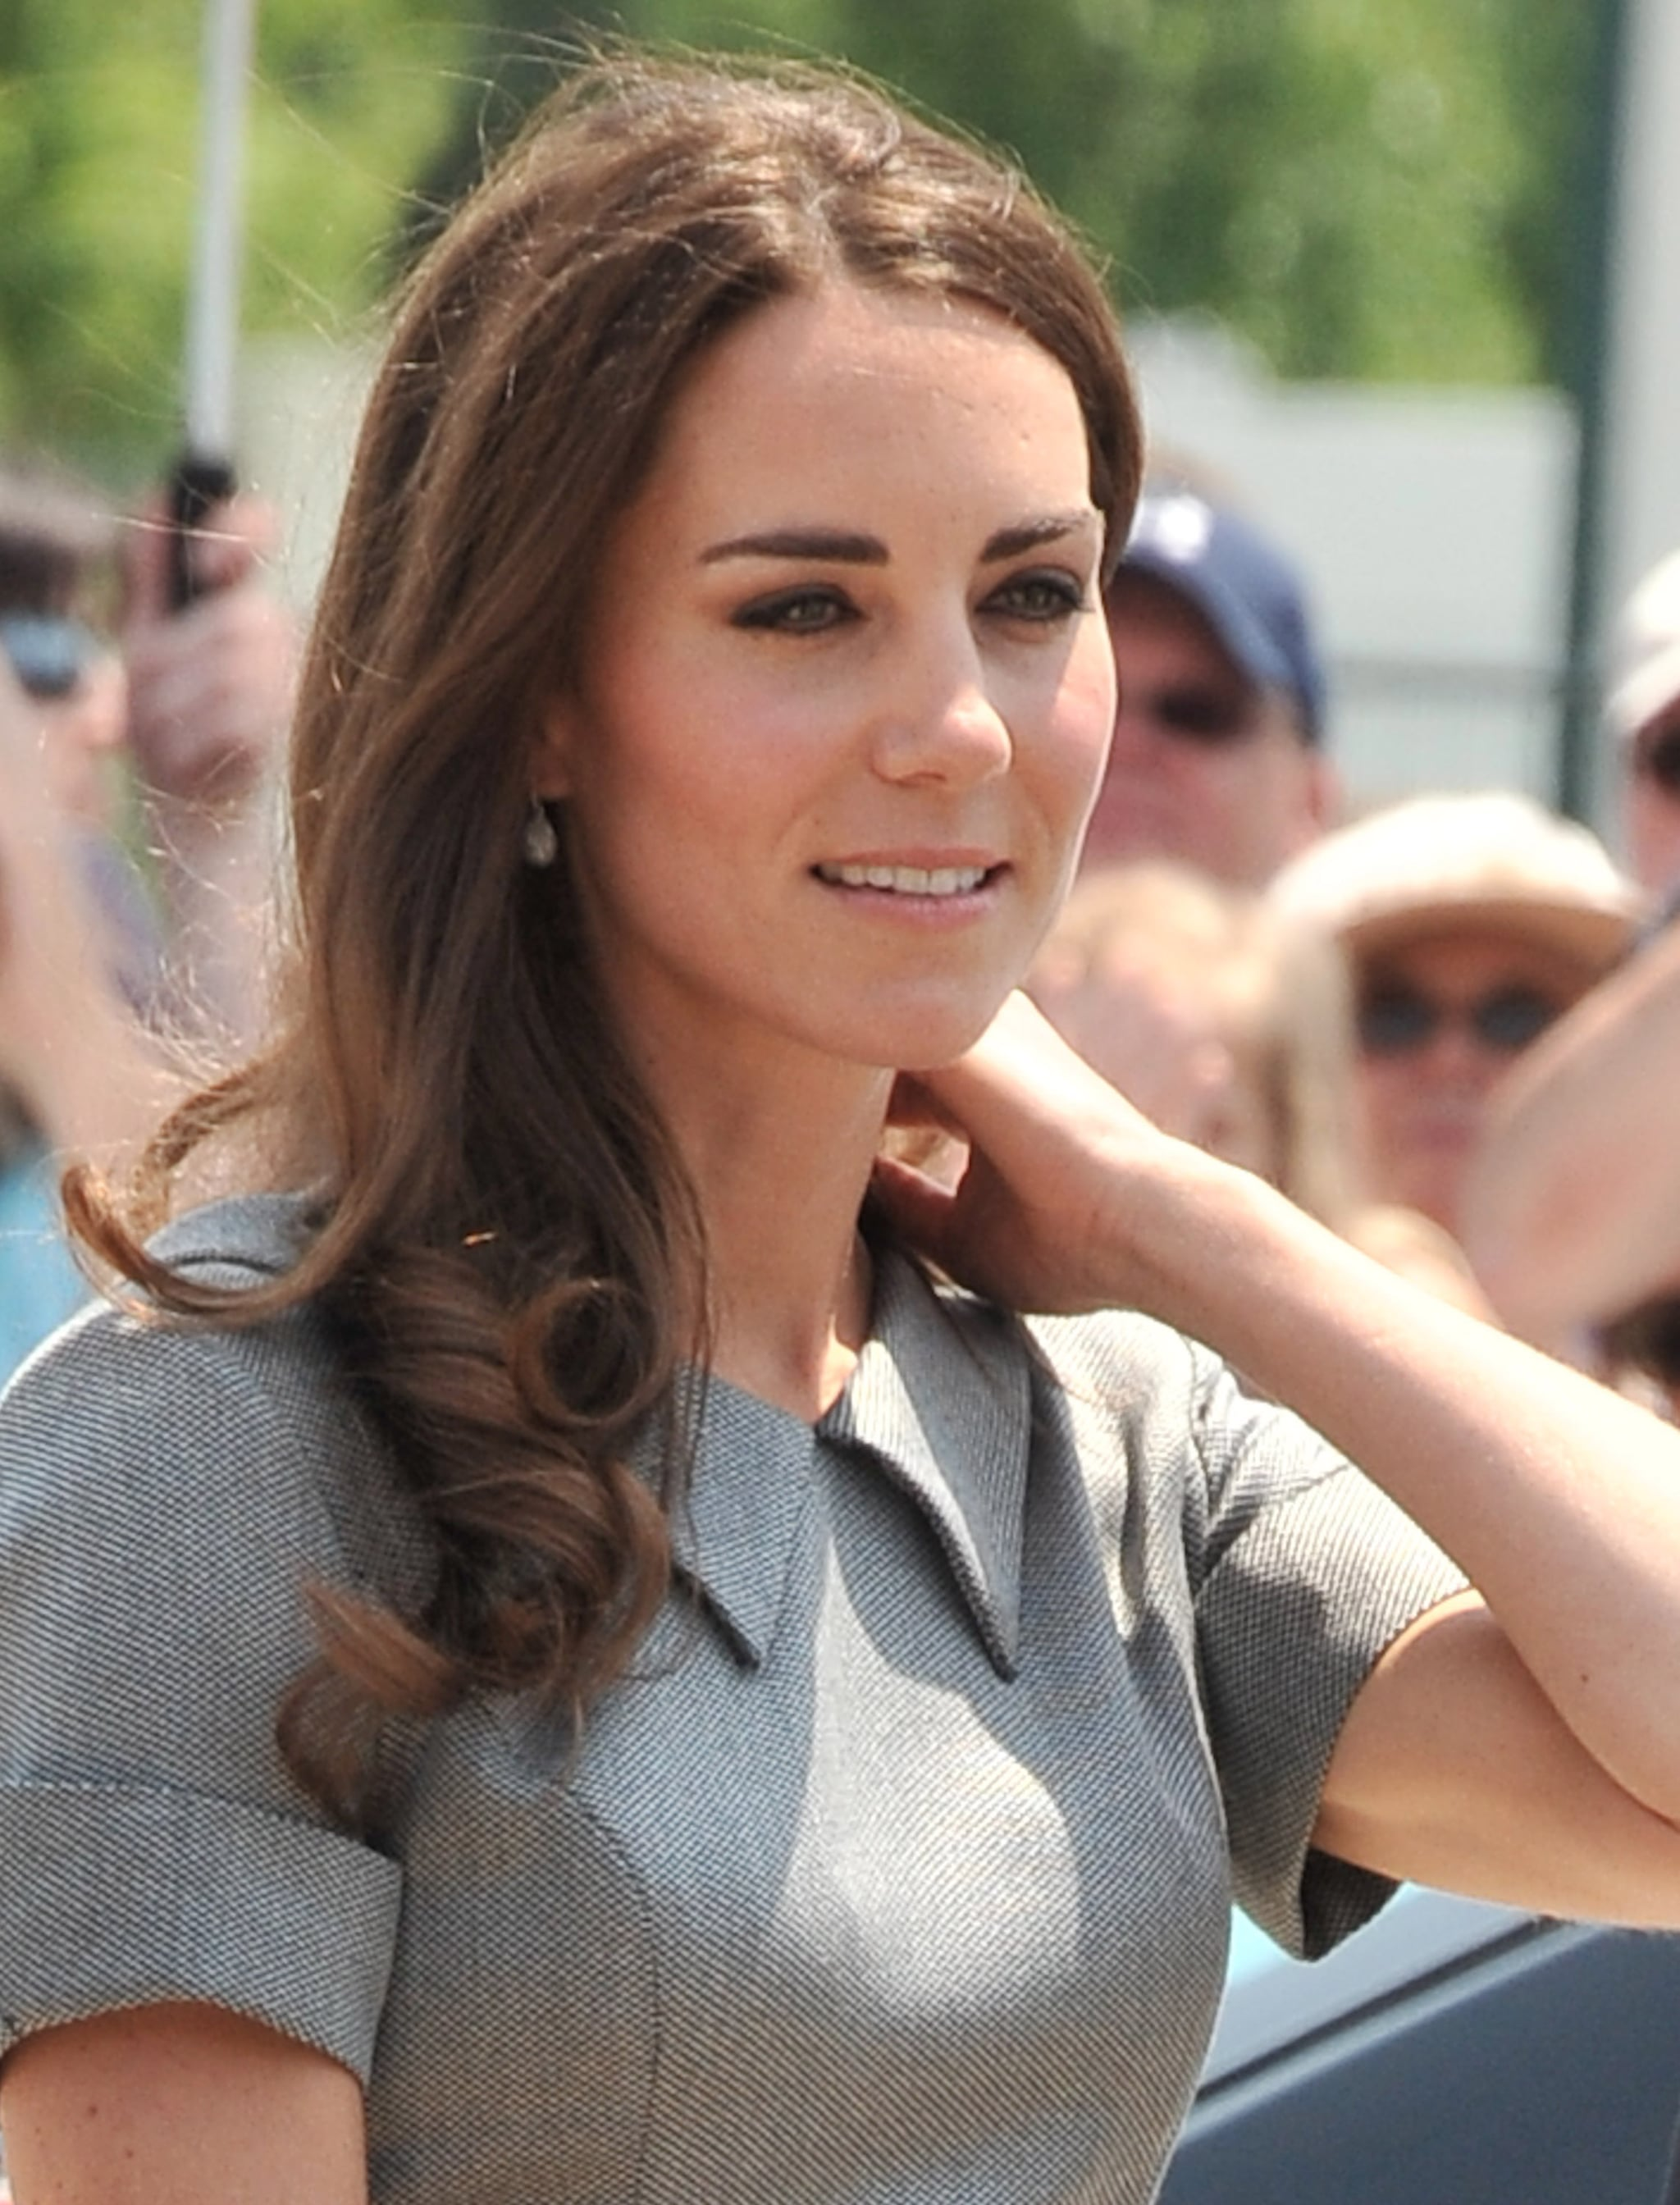 """July 2nd, 2011 Attending a tree planting ceremony in Ottawa, Canada.  Kate wears a grey Catherine Walker """"Kensington"""" dress and Links of London Hope Egg earrings."""